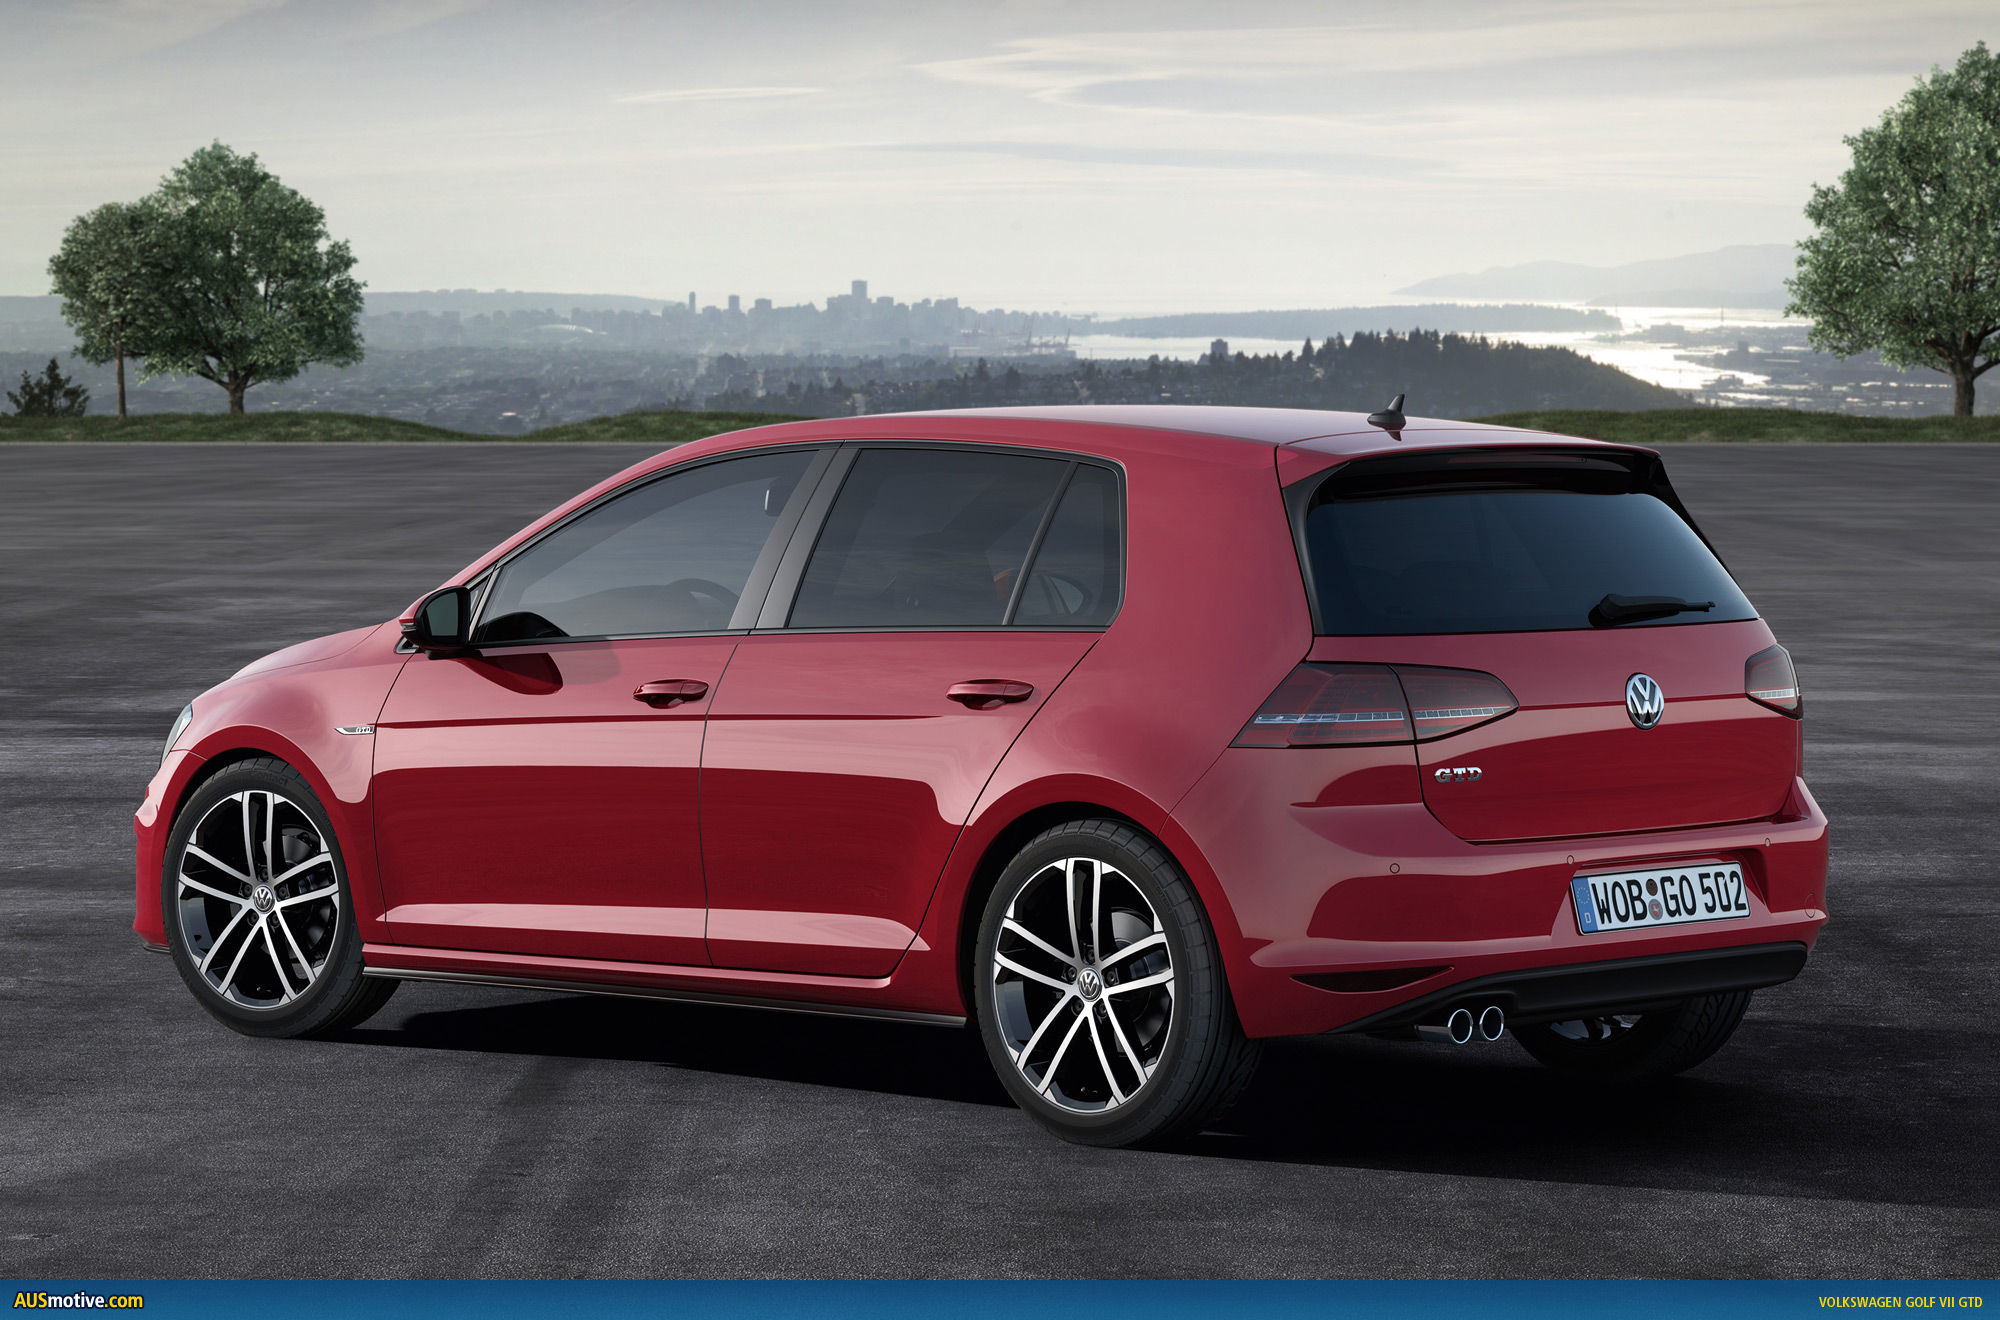 volkswagen golf vii gtd revealed. Black Bedroom Furniture Sets. Home Design Ideas